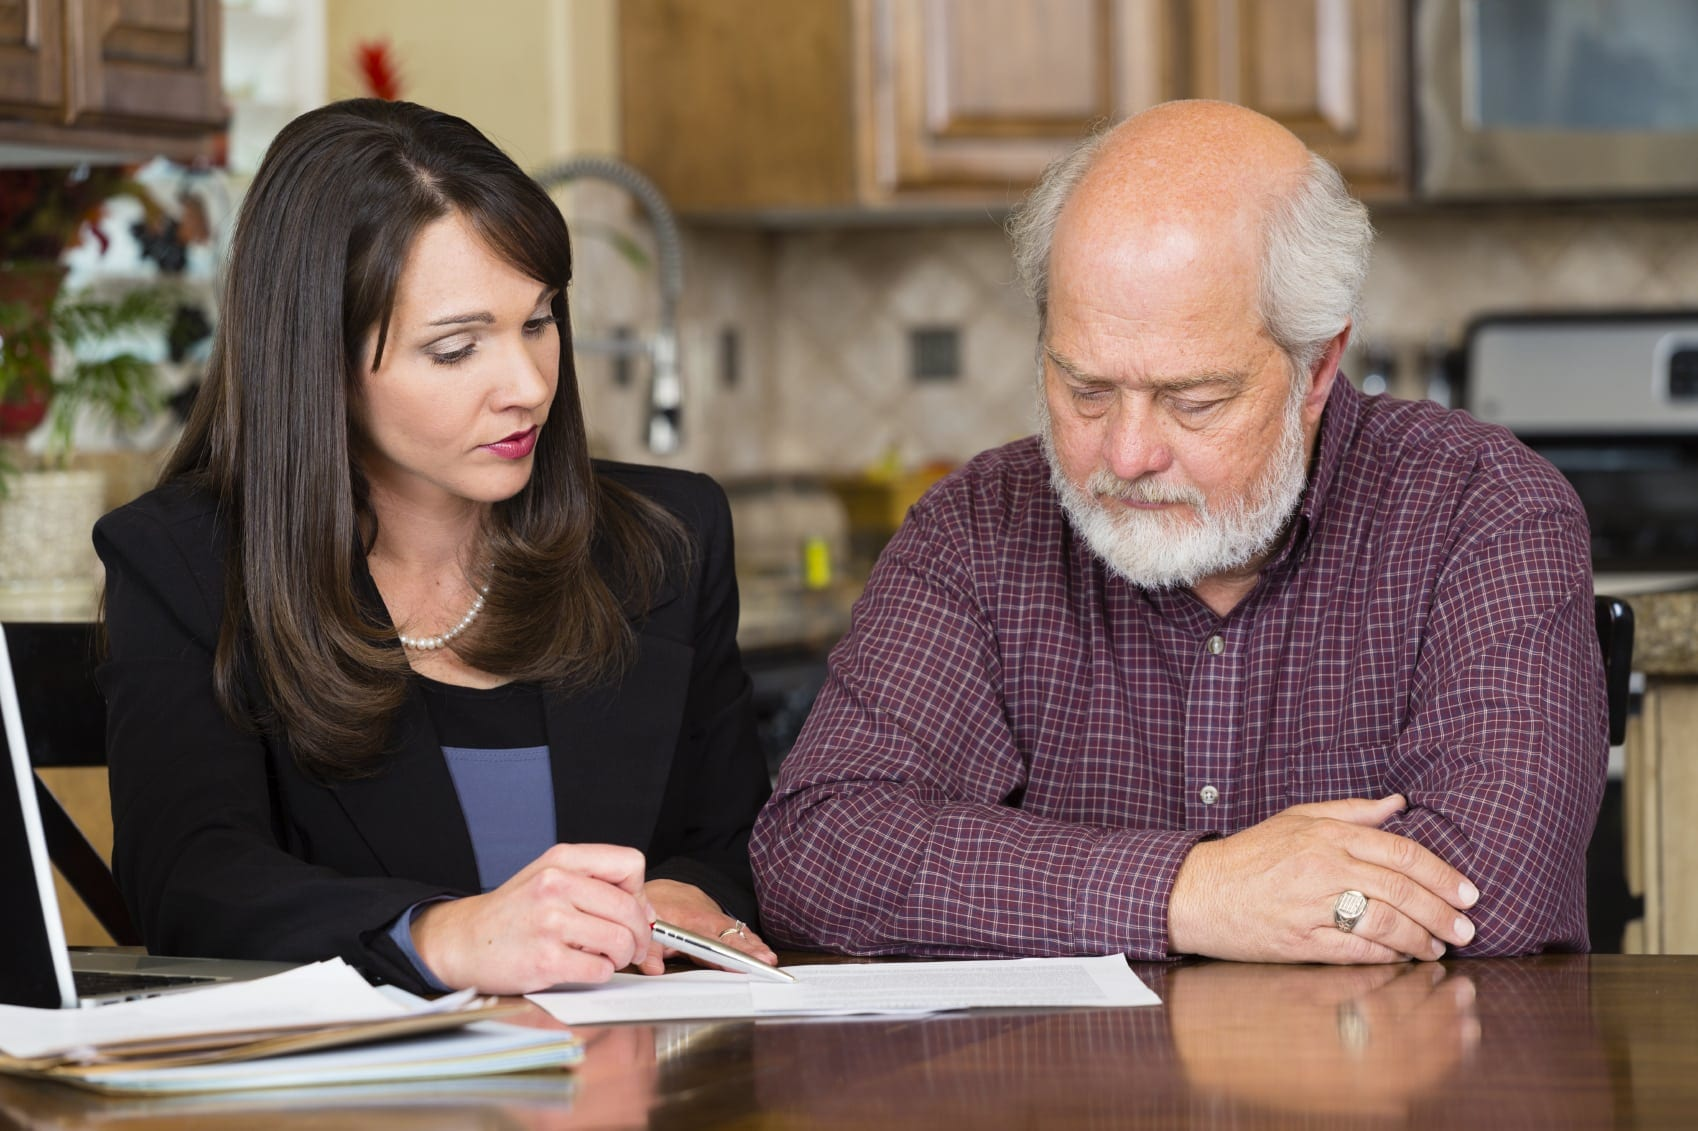 Female Attorney Explaining Legal Documents To Client Stock Photo